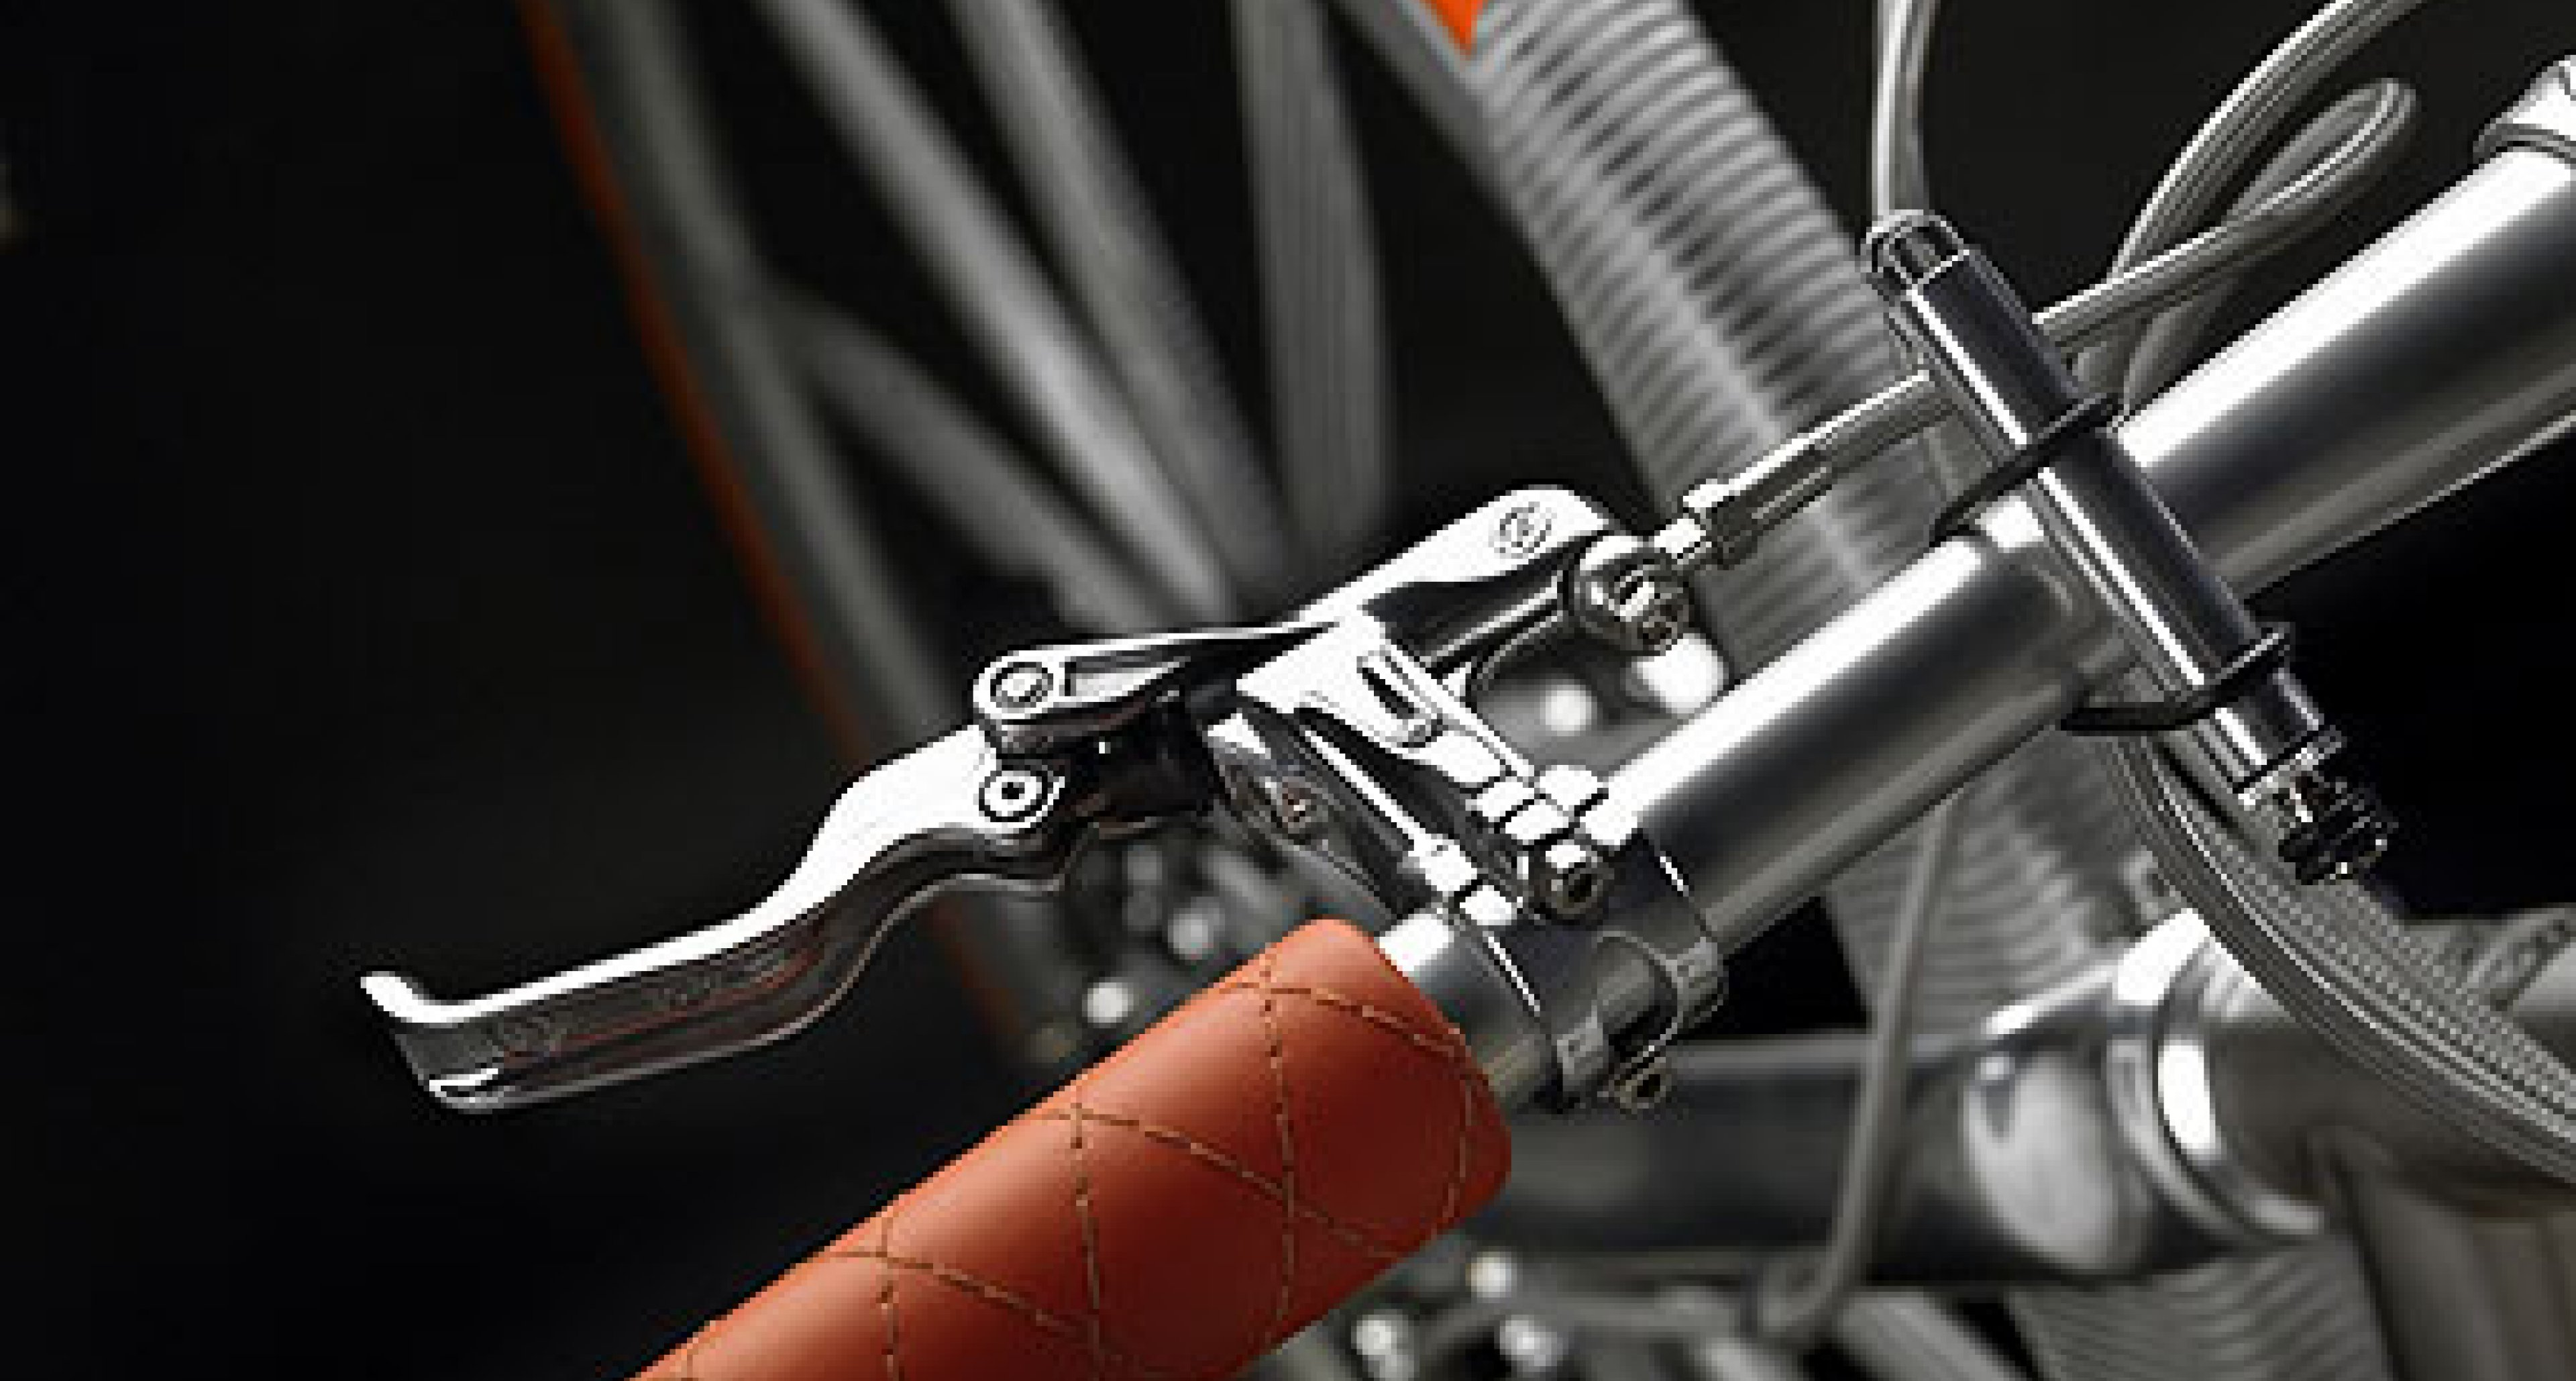 Spyker Aeroblade - Individuality on two wheels